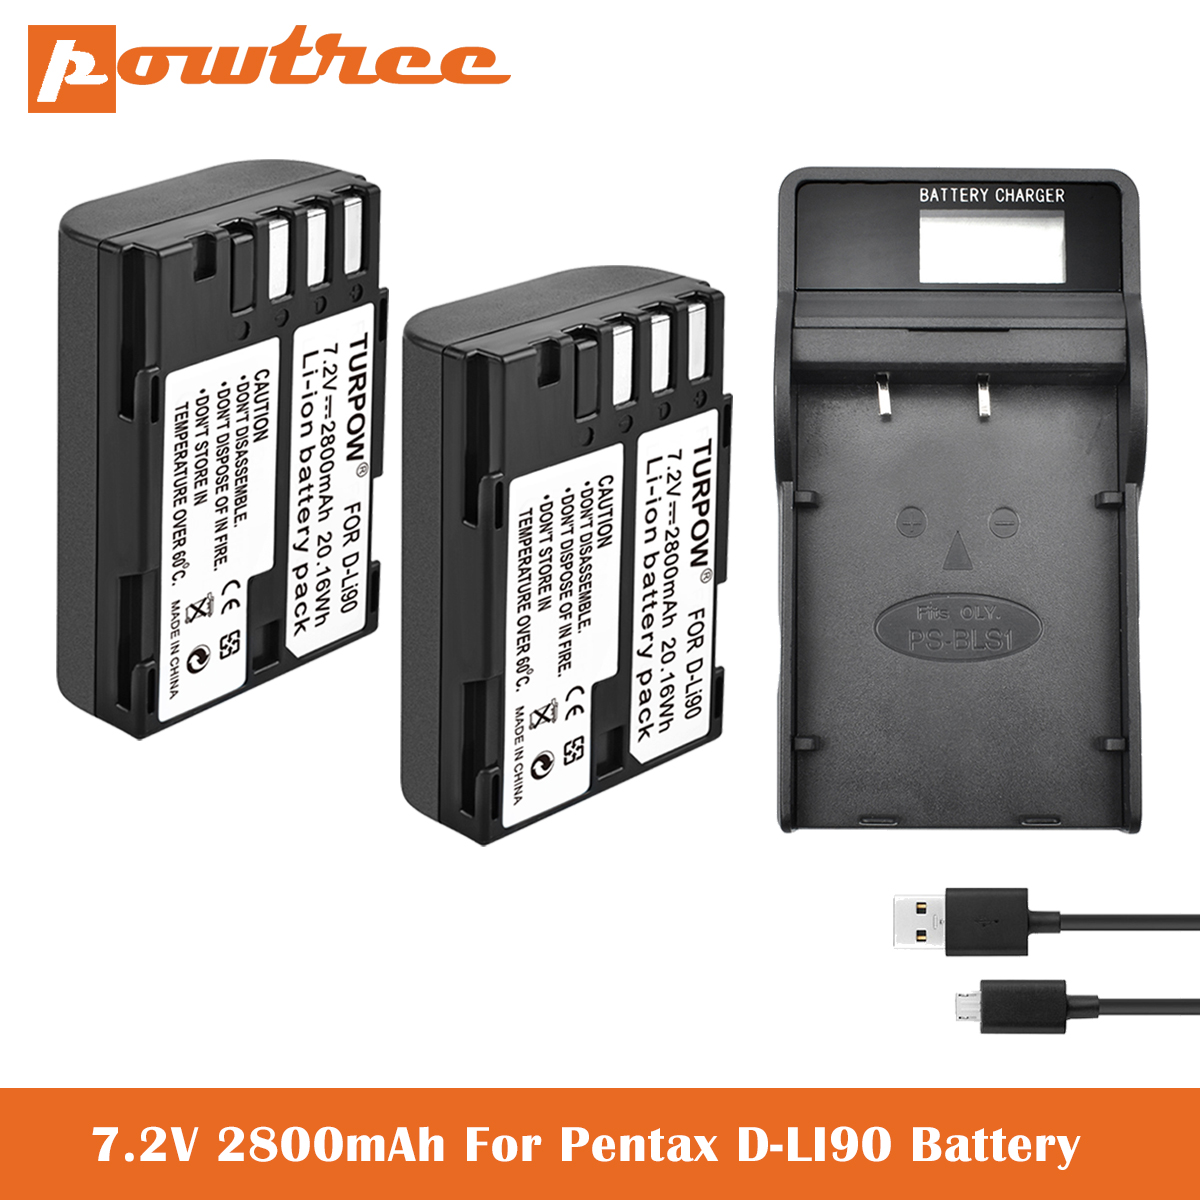 <font><b>7</b></font>.2V <font><b>2800mAh</b></font> D-Li109 Li-ion Battery+Charger for Pentax K-1 DSLR, K-01, K-<font><b>3</b></font>, K-<font><b>3</b></font> II, K-5, K-5 II, K-5 IIs, K-<font><b>7</b></font>,SLR 645D Digital image